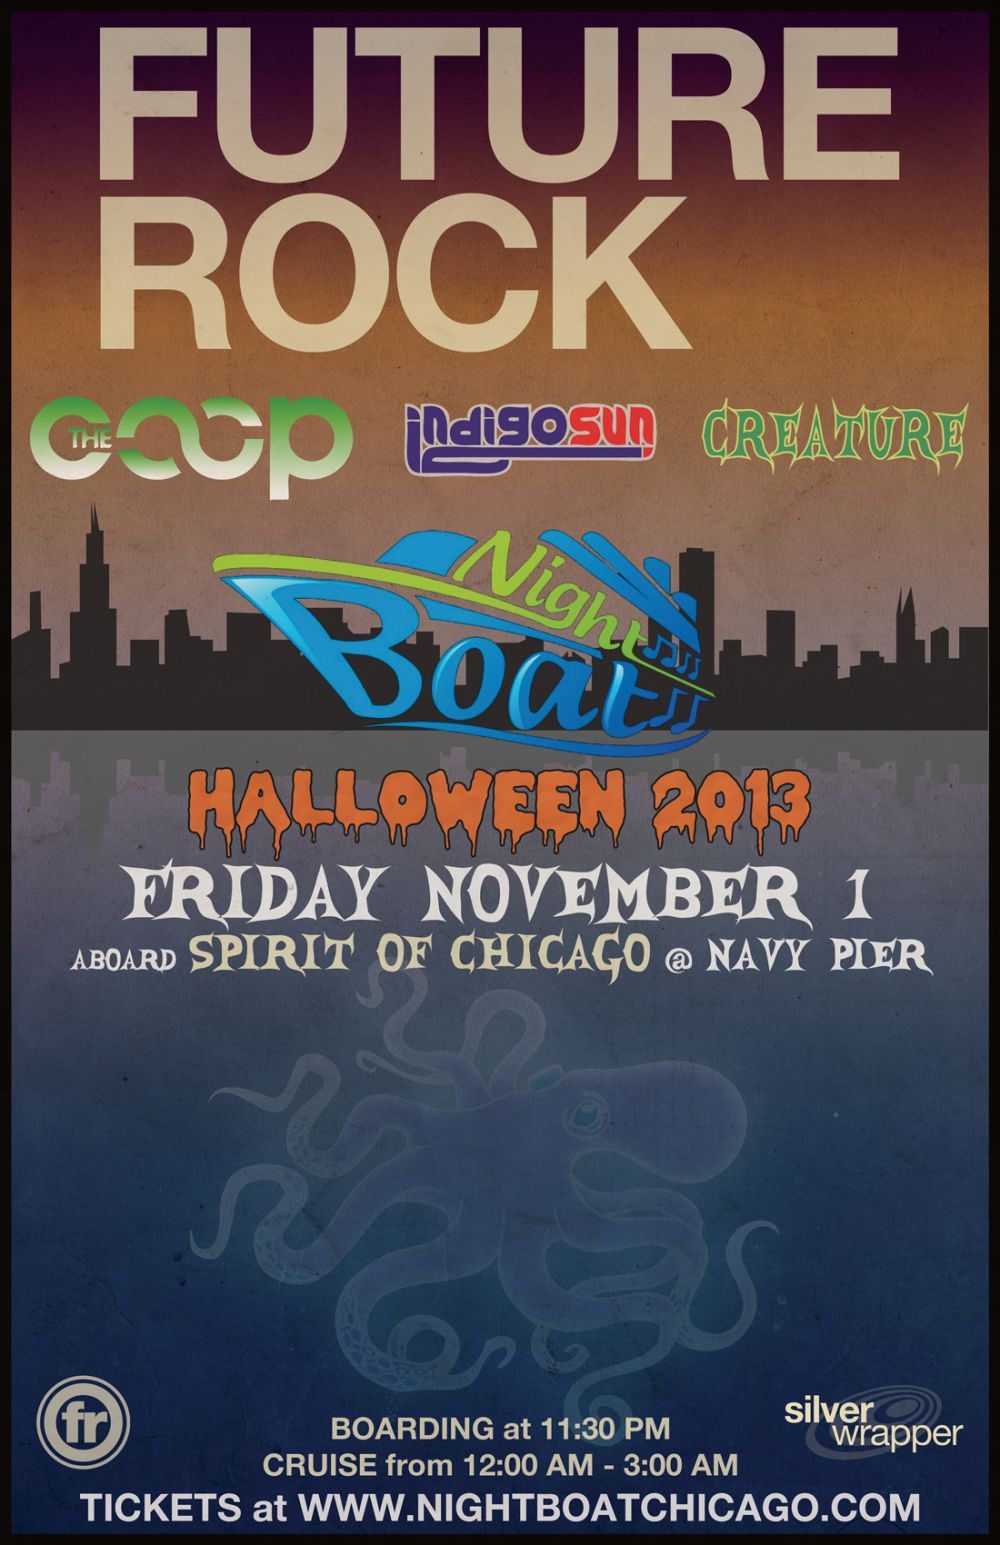 Future Rock @ Nightboat Halloween Boat Cruise in Chicago, IL 11/1